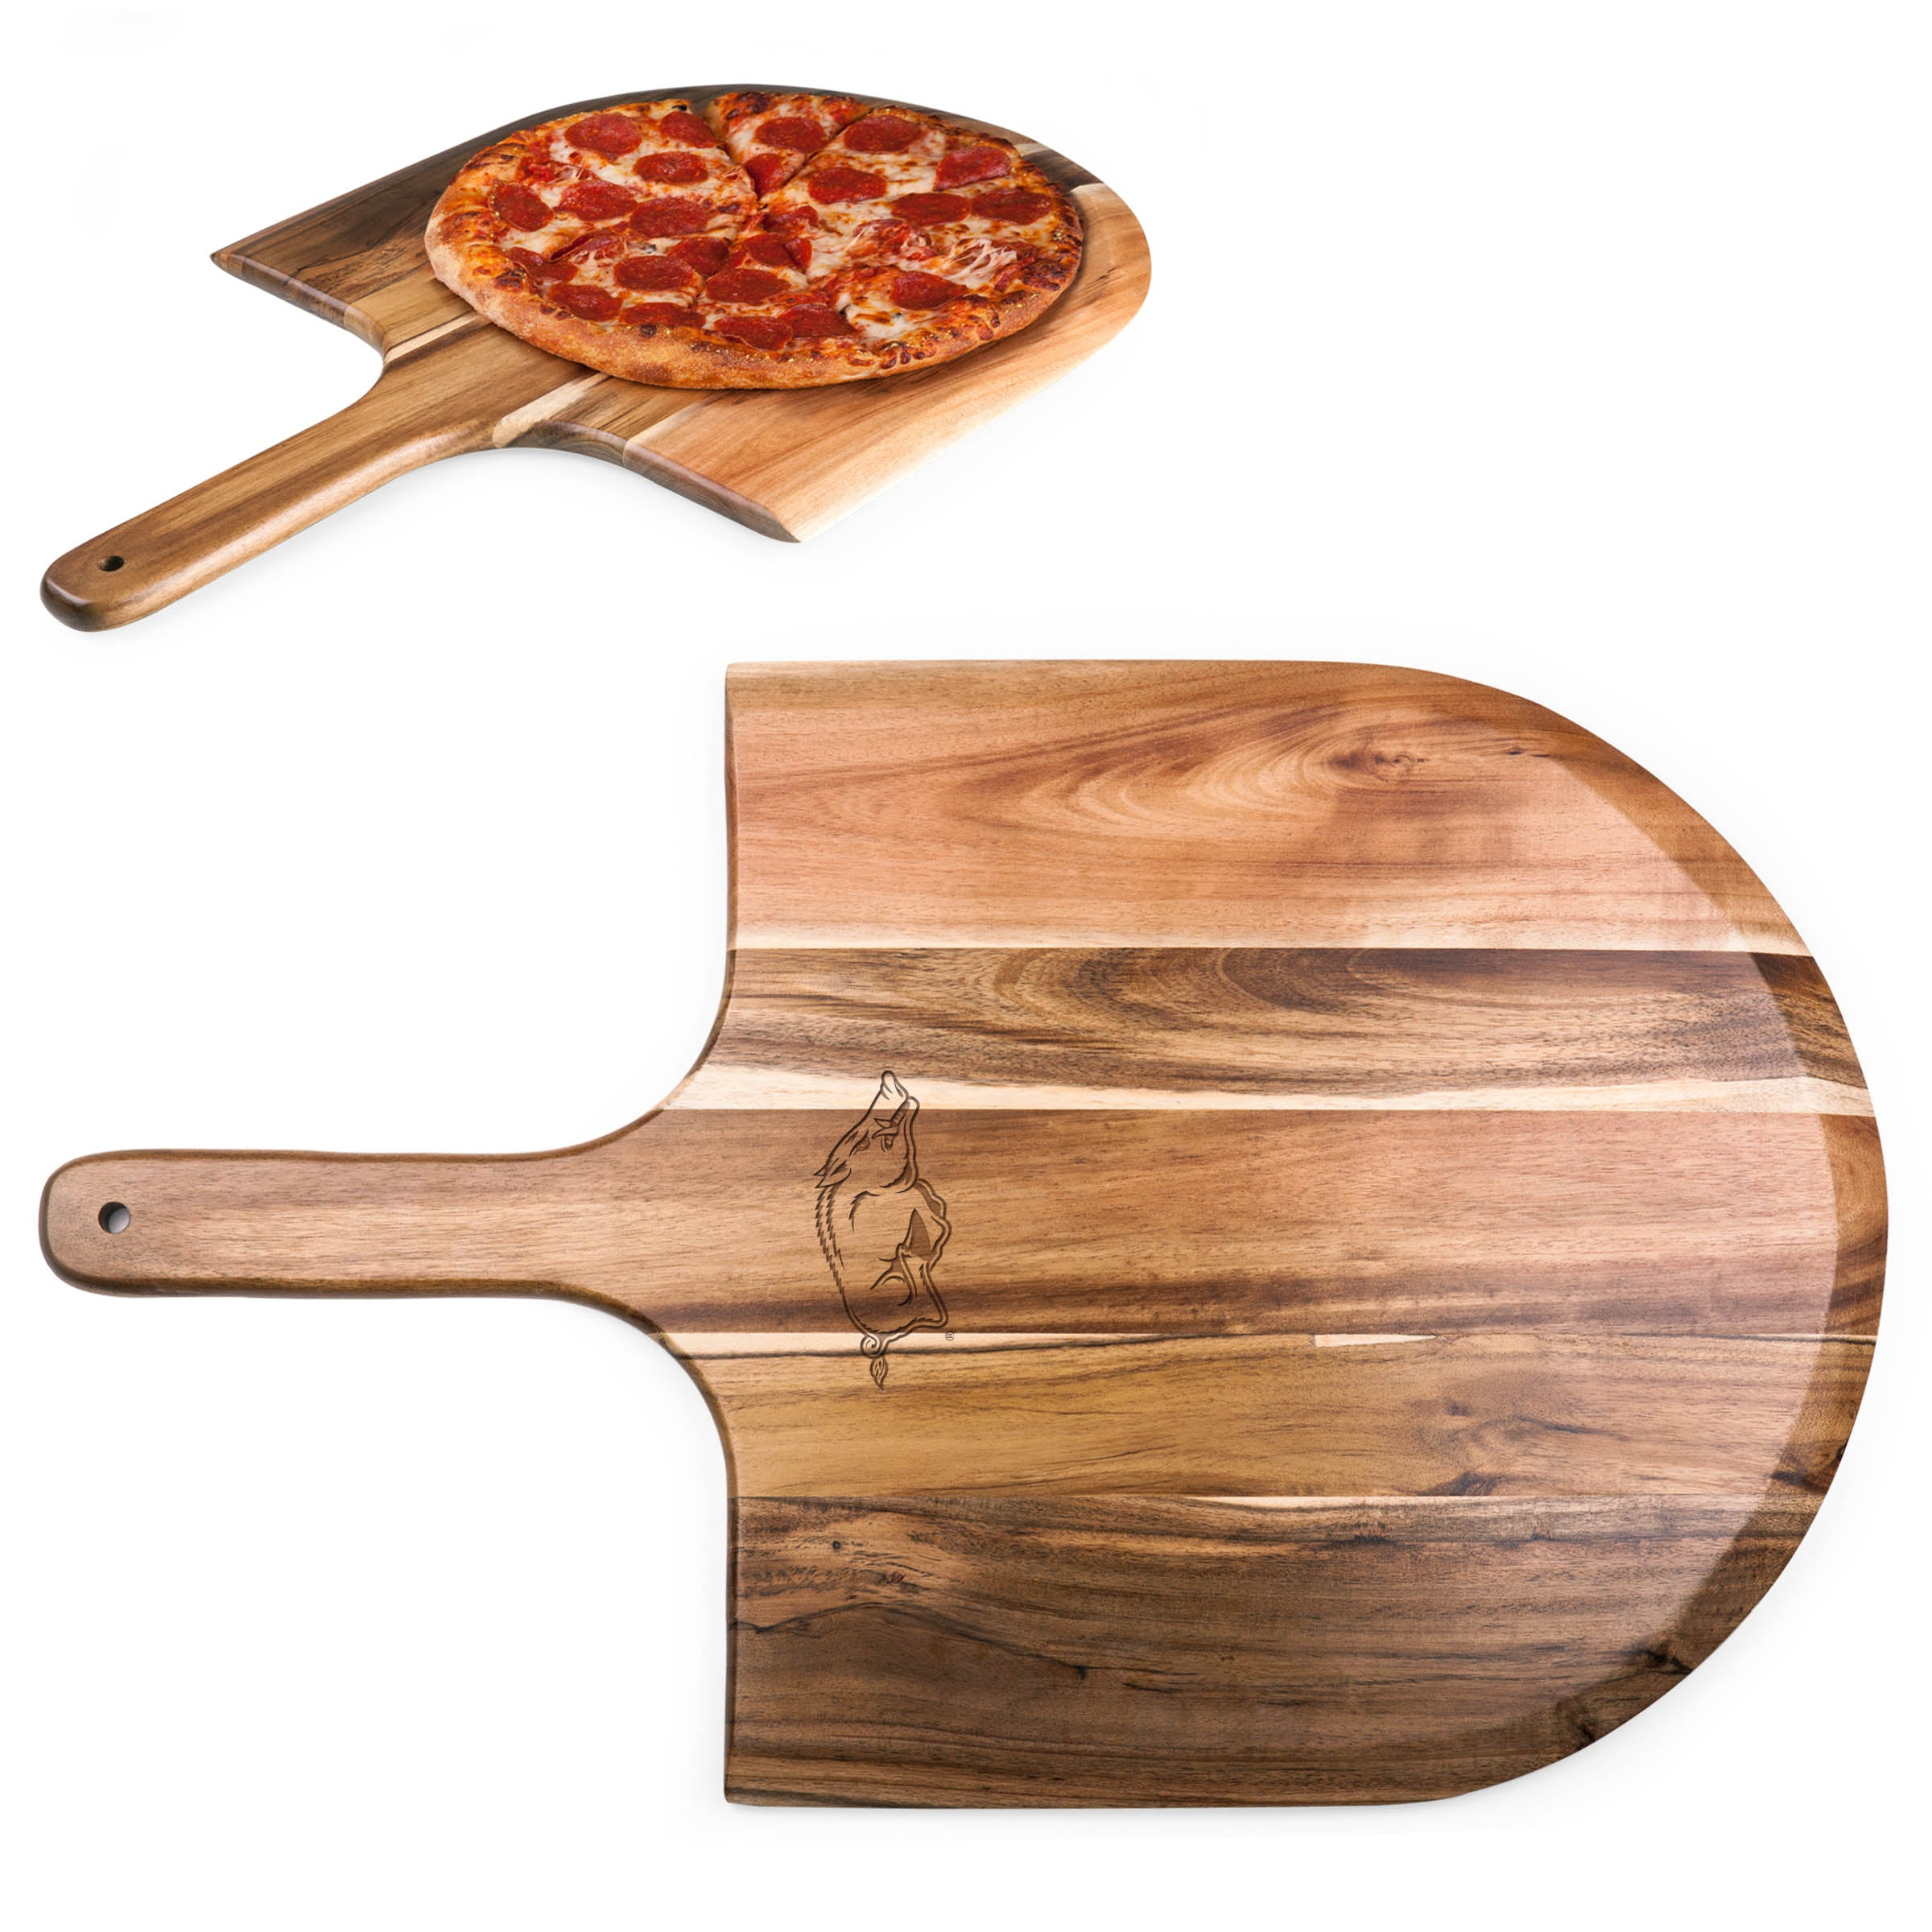 Arkansas Razorbacks 'Acacia Pizza Peel' Serving Paddle-Natural Wood Laser Engraving